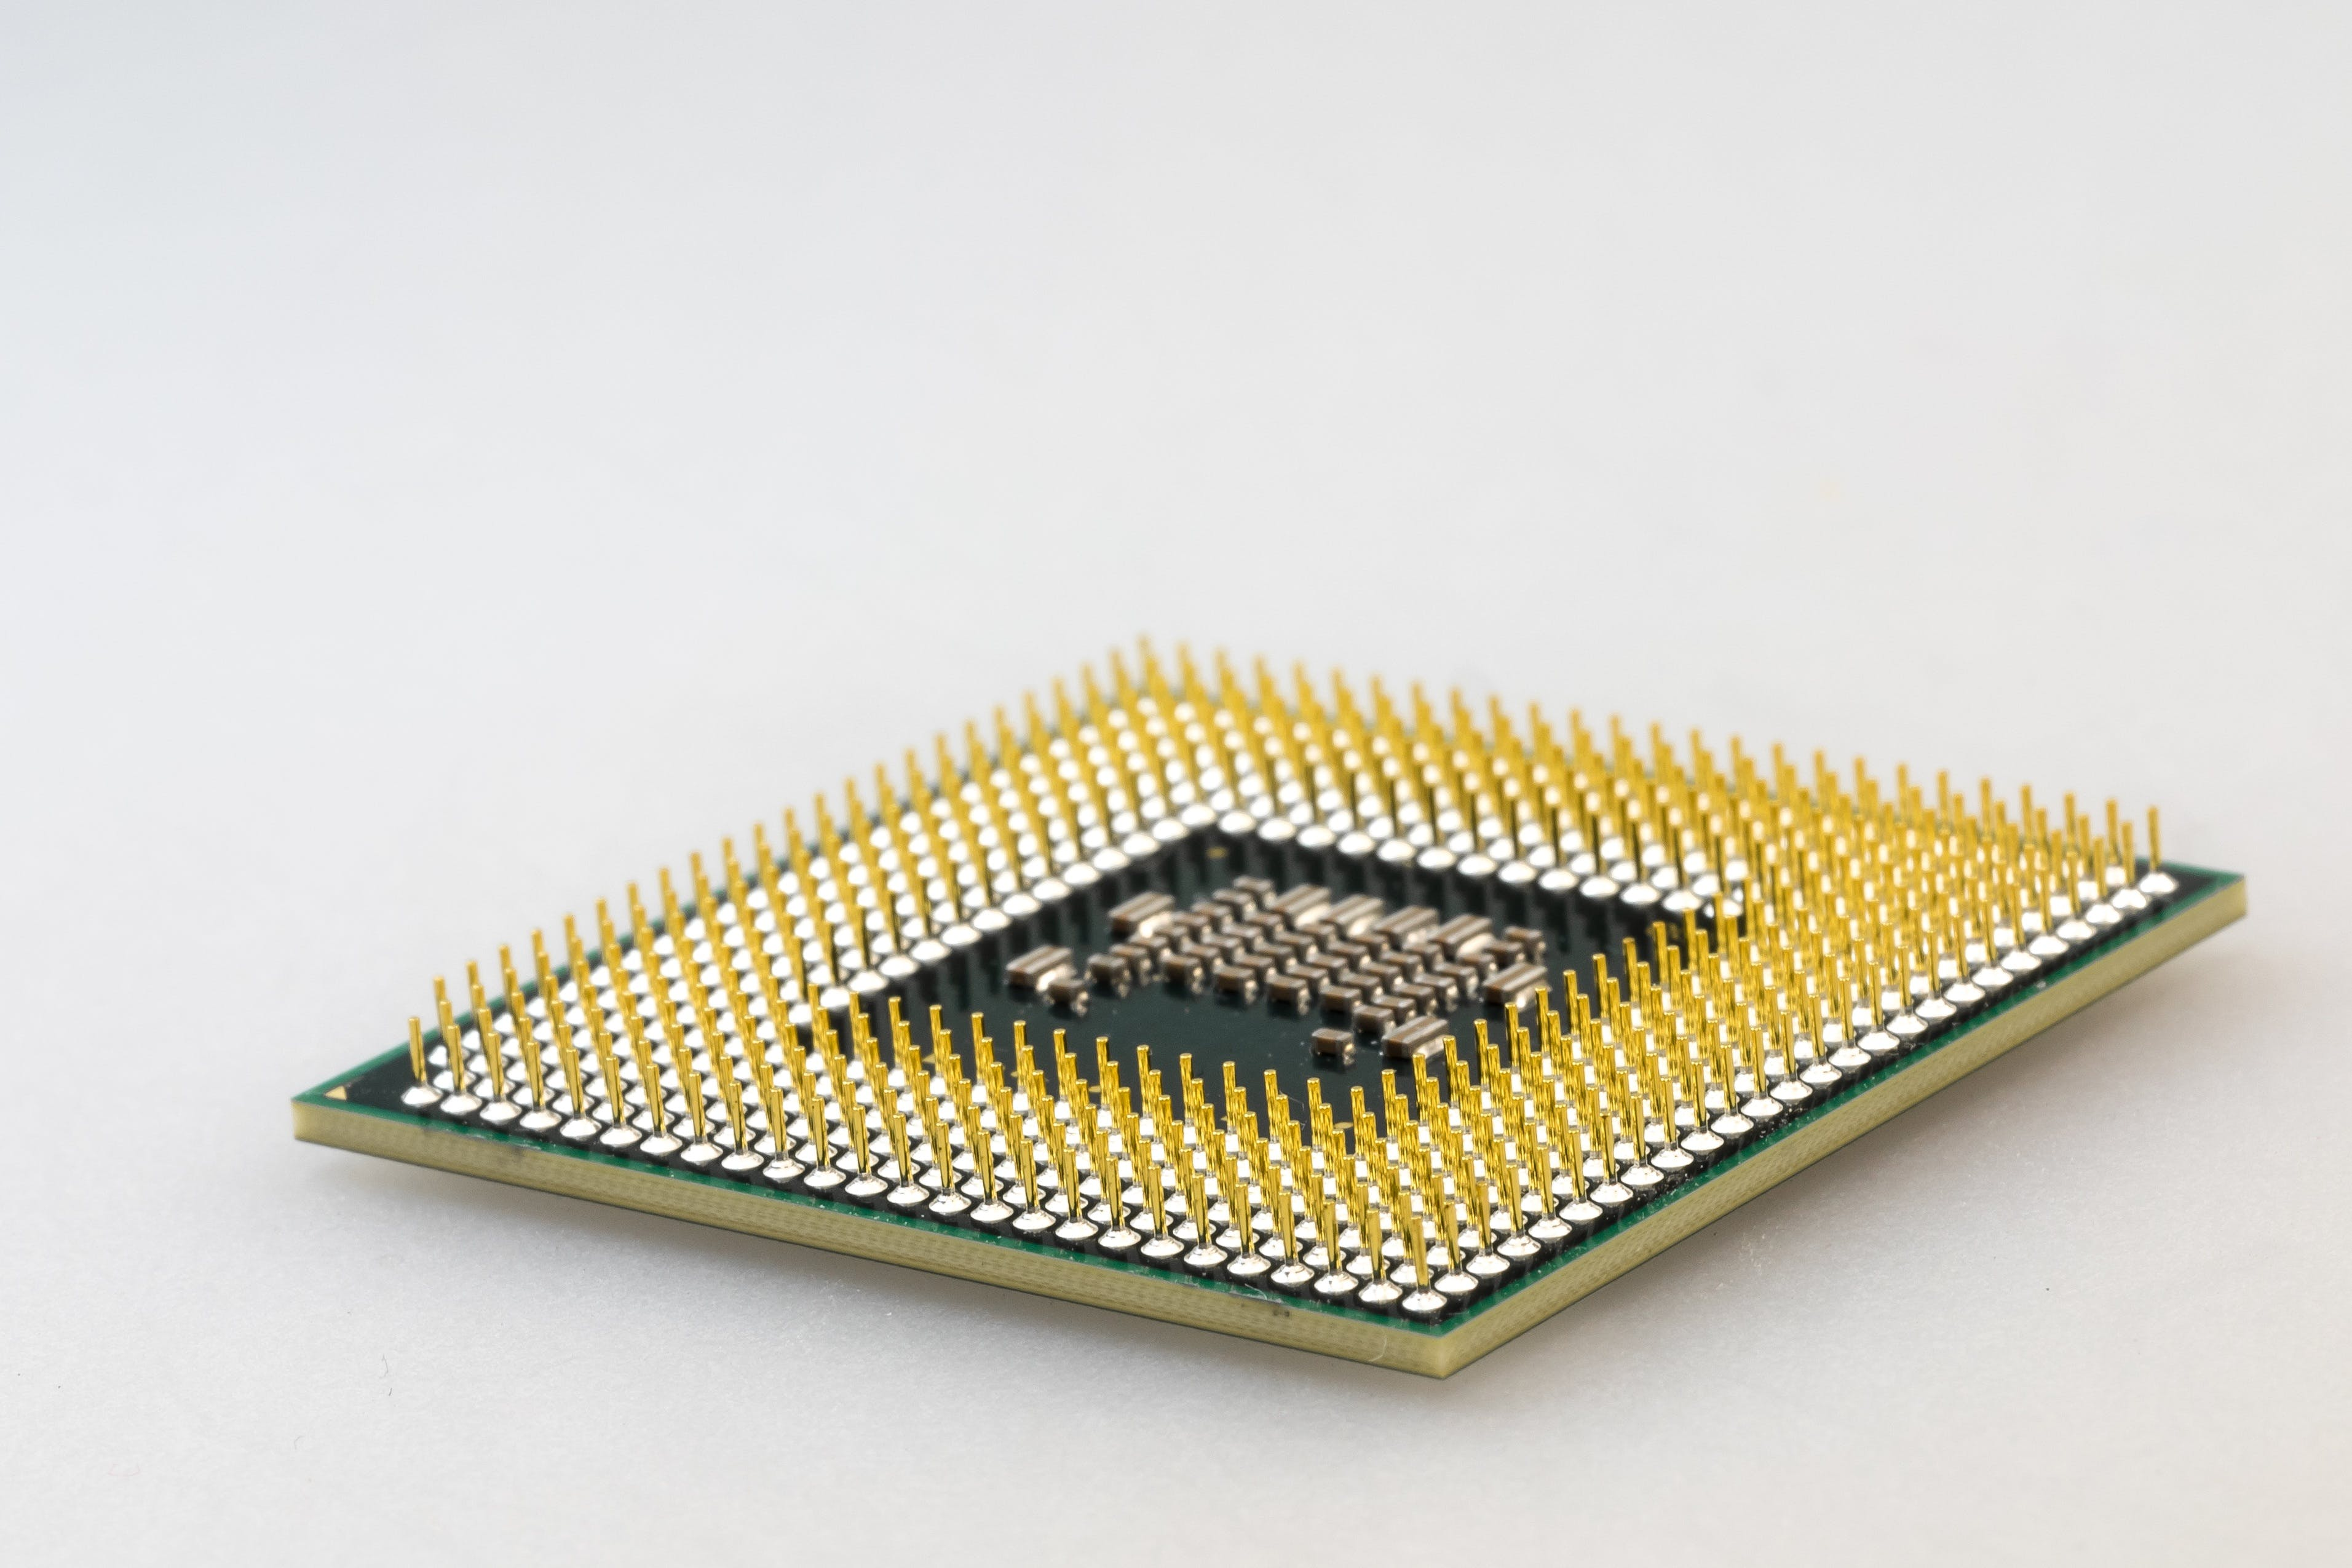 Brown and Green Computer Processor